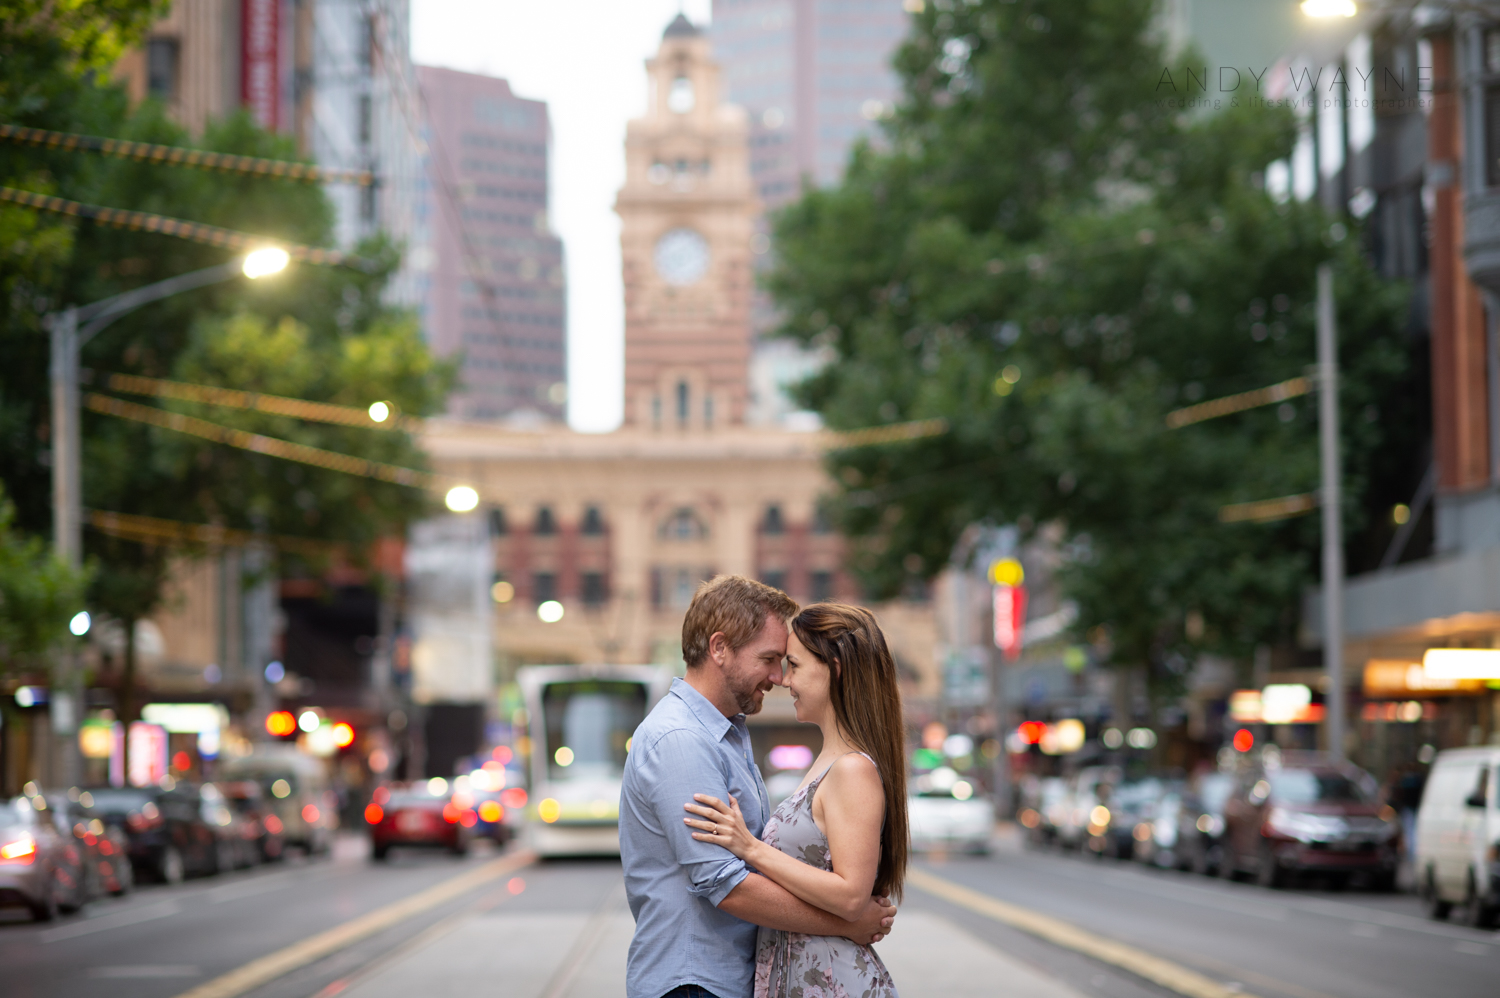 melbourne wedding photographer andy wayne-68.jpg